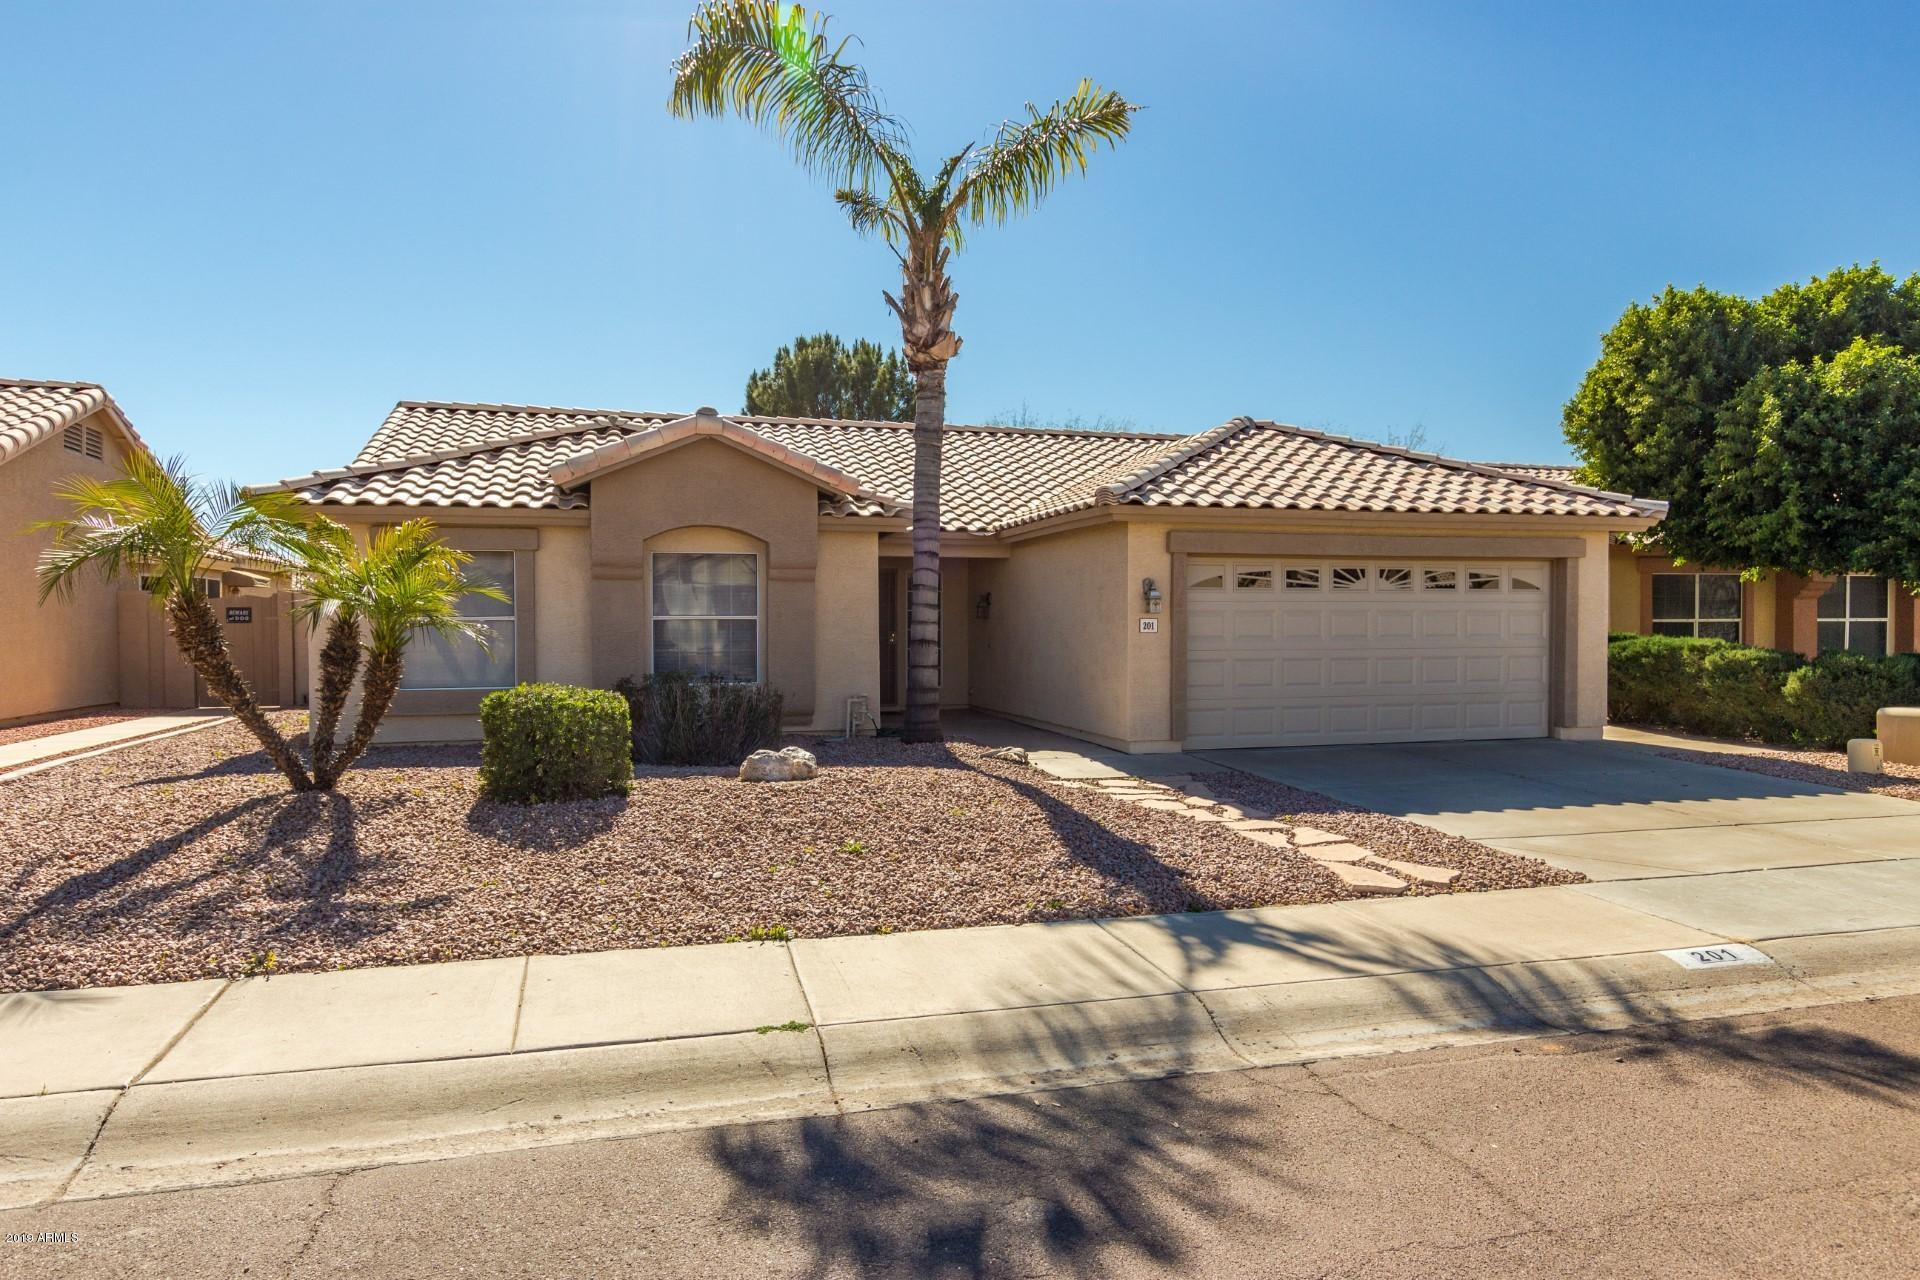 Photo for 201 W Marco Polo Road, Phoenix, AZ 85027 (MLS # 5881858)